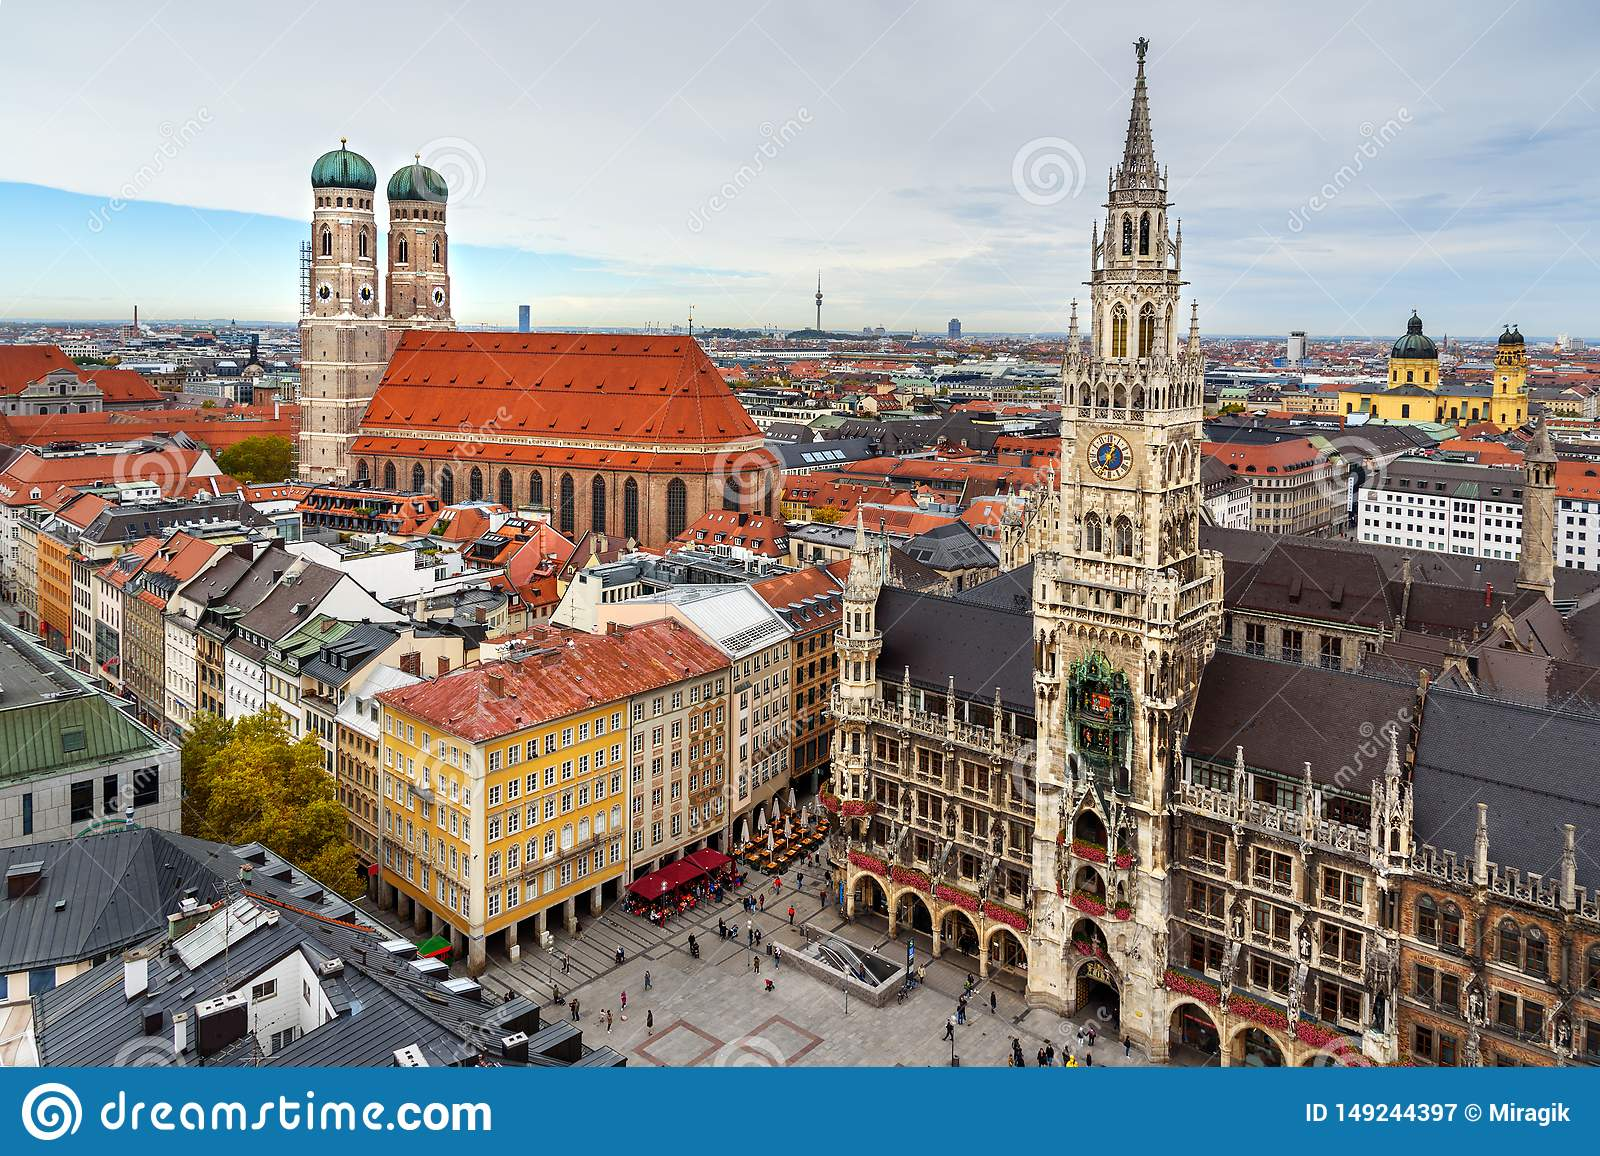 Aerial Cityscape Of Munich Historical Center With New Town